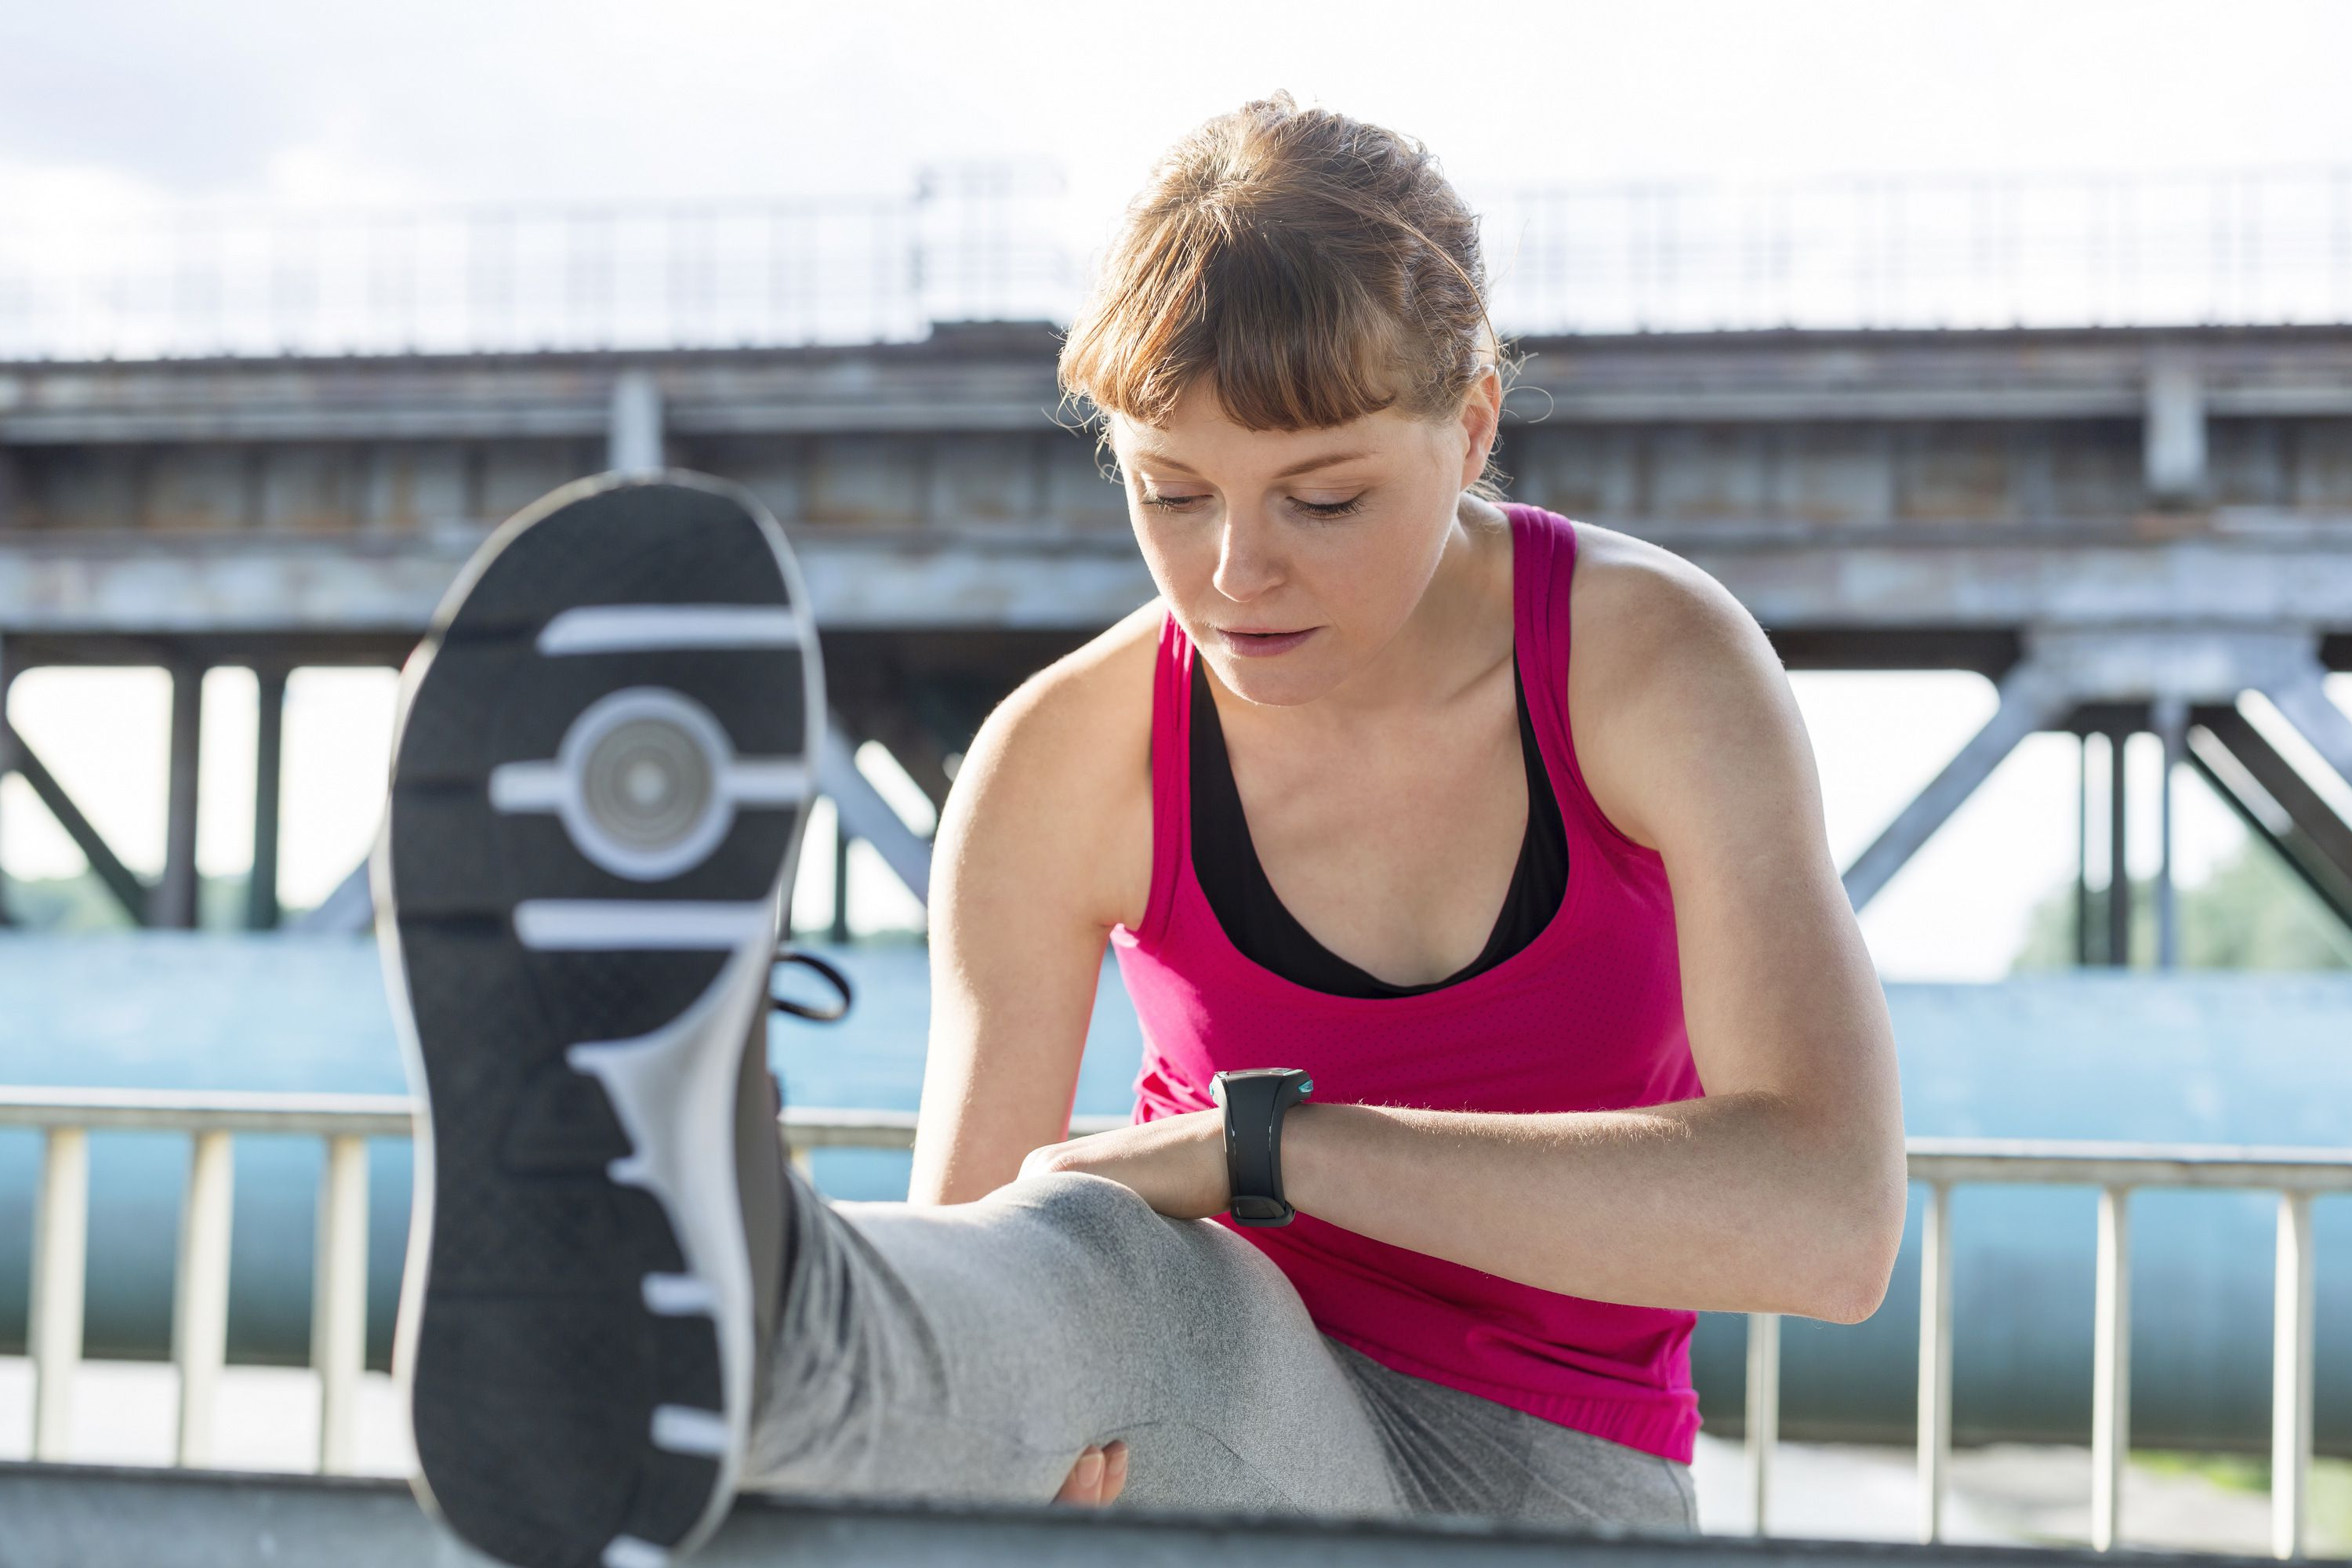 How To Prevent And Treat The Pain Of Shin Splints